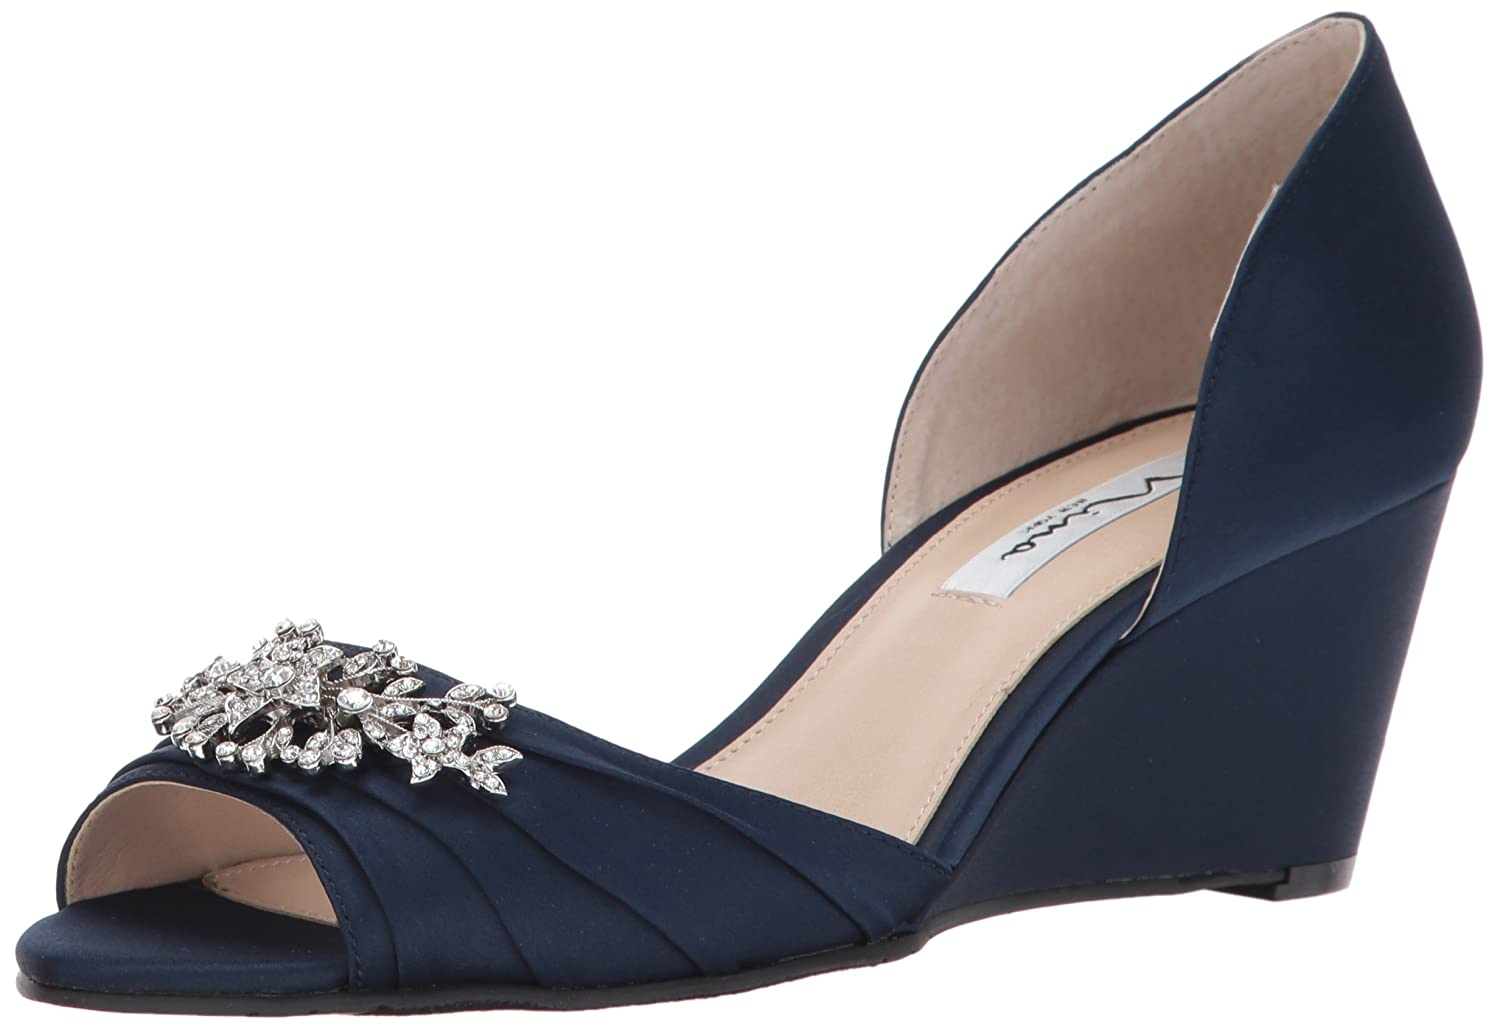 Nina Women's Emiko Dress Pump B01MTEJRXZ 8.5 B(M) US|New Navy